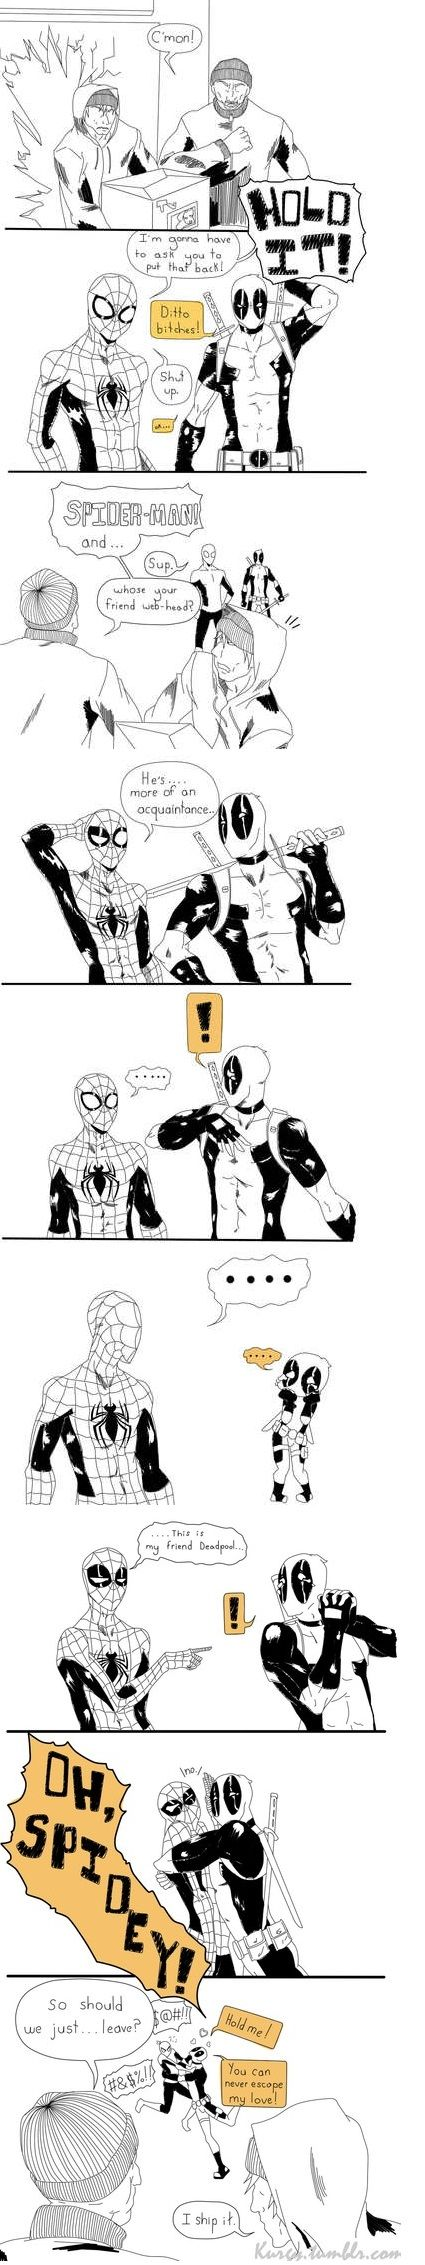 Spideypool<<<<<<<<<<<<ONE OF THE BURGLERS SHIP IT